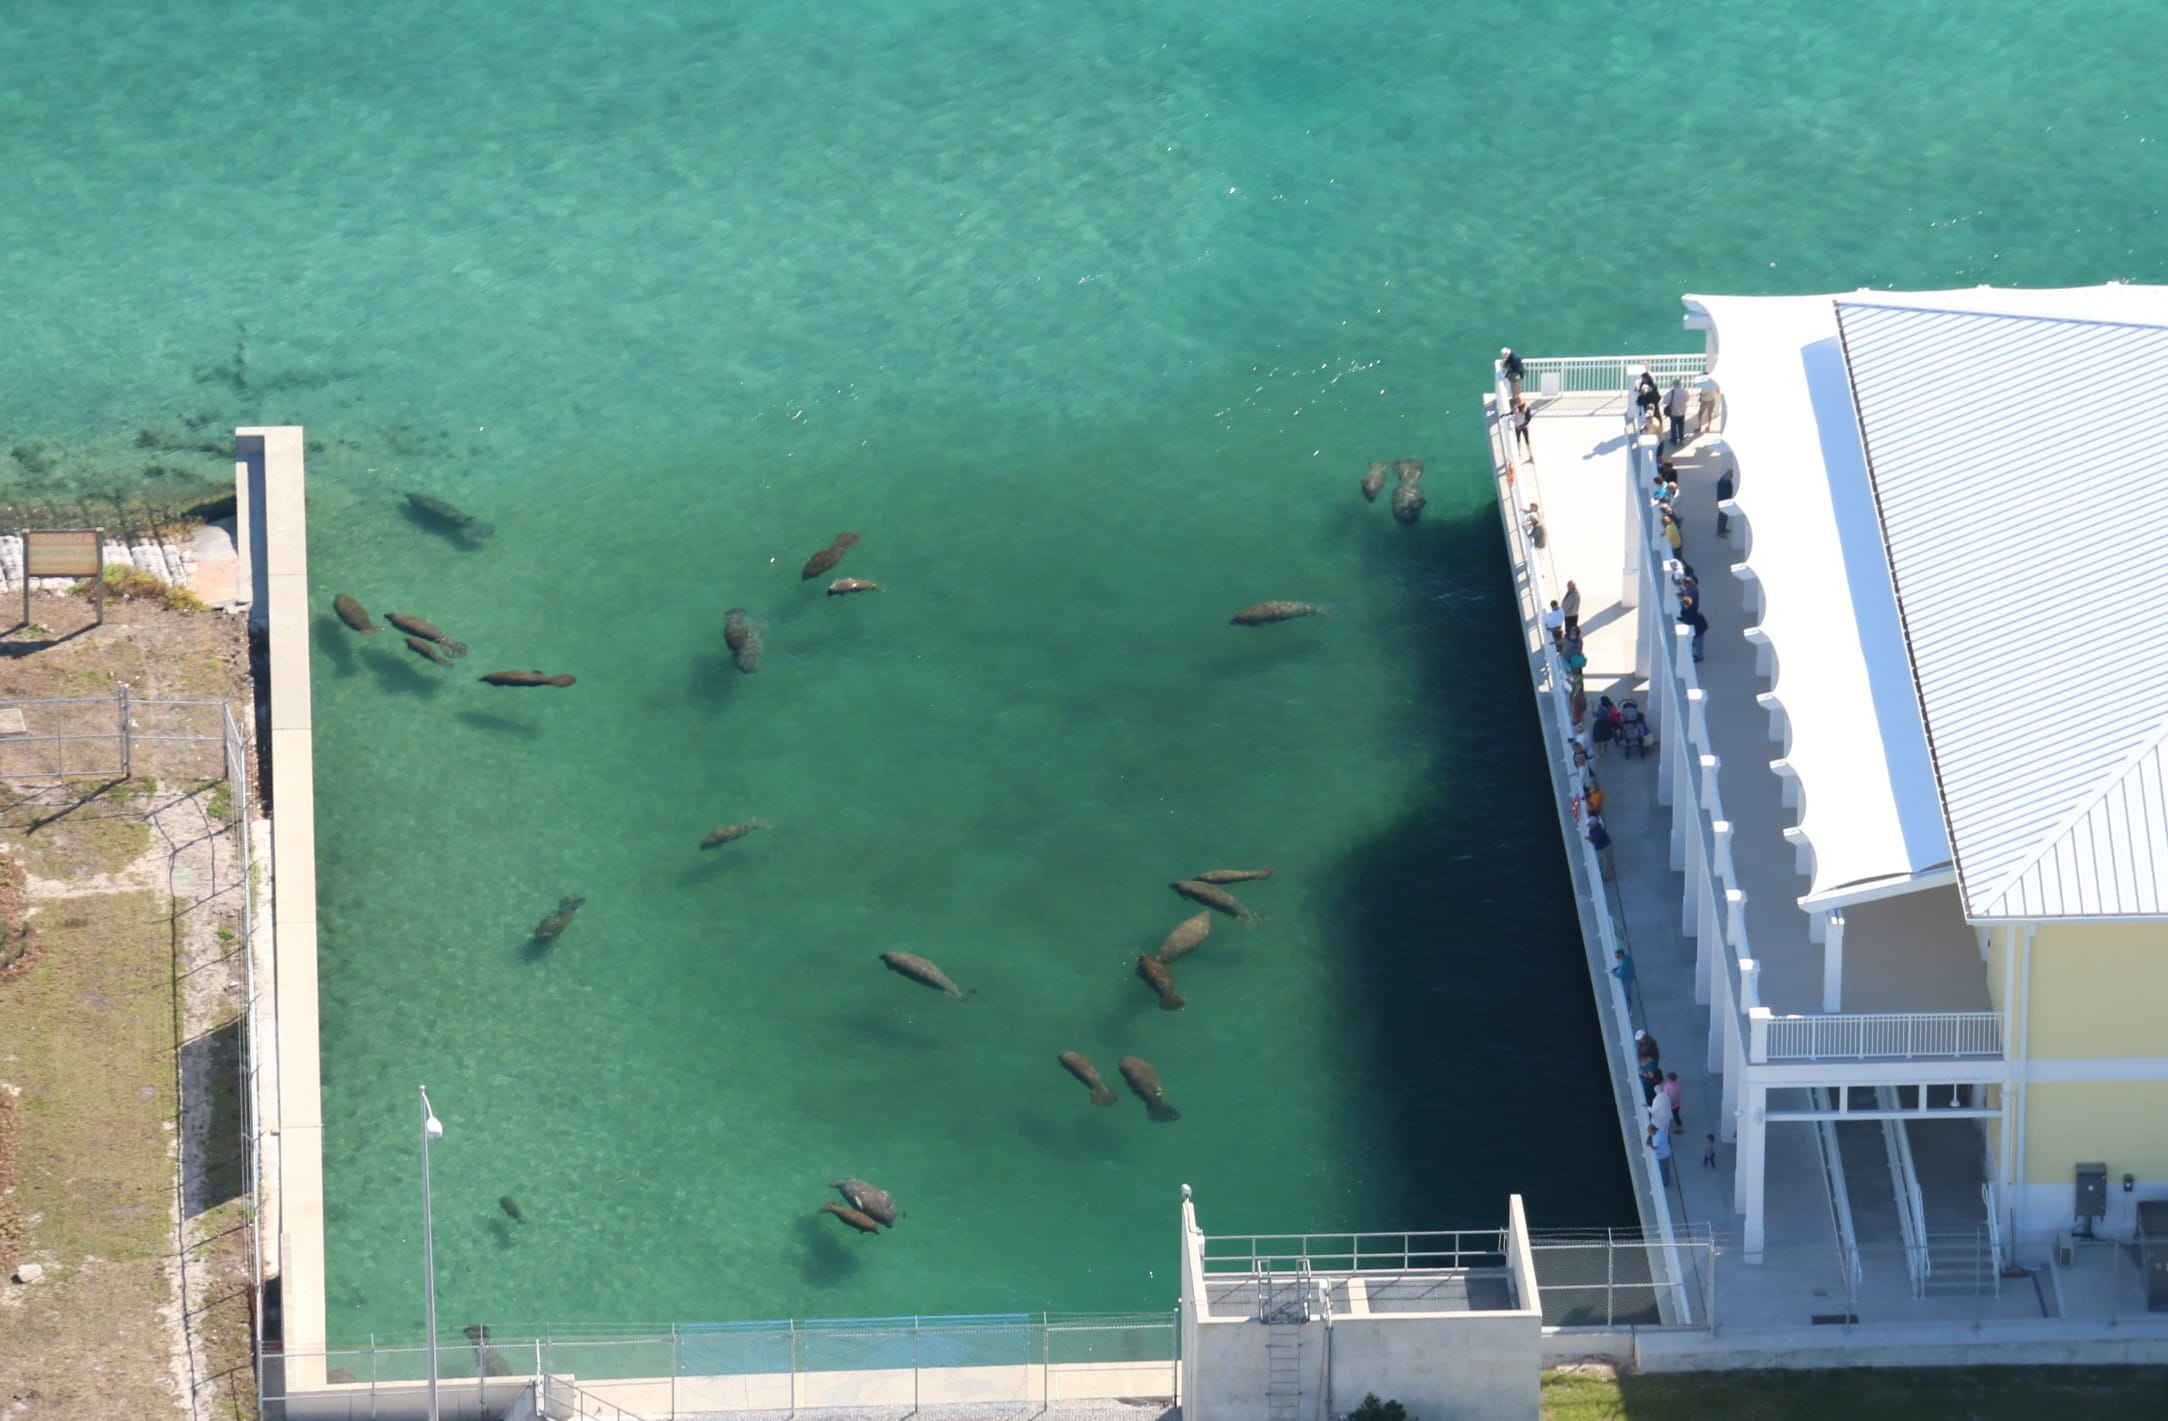 FWC 2016 Manatee Aerial Survey. Photo taken by Amber Howell in Palm Beach, FL., Via Creative Commons.